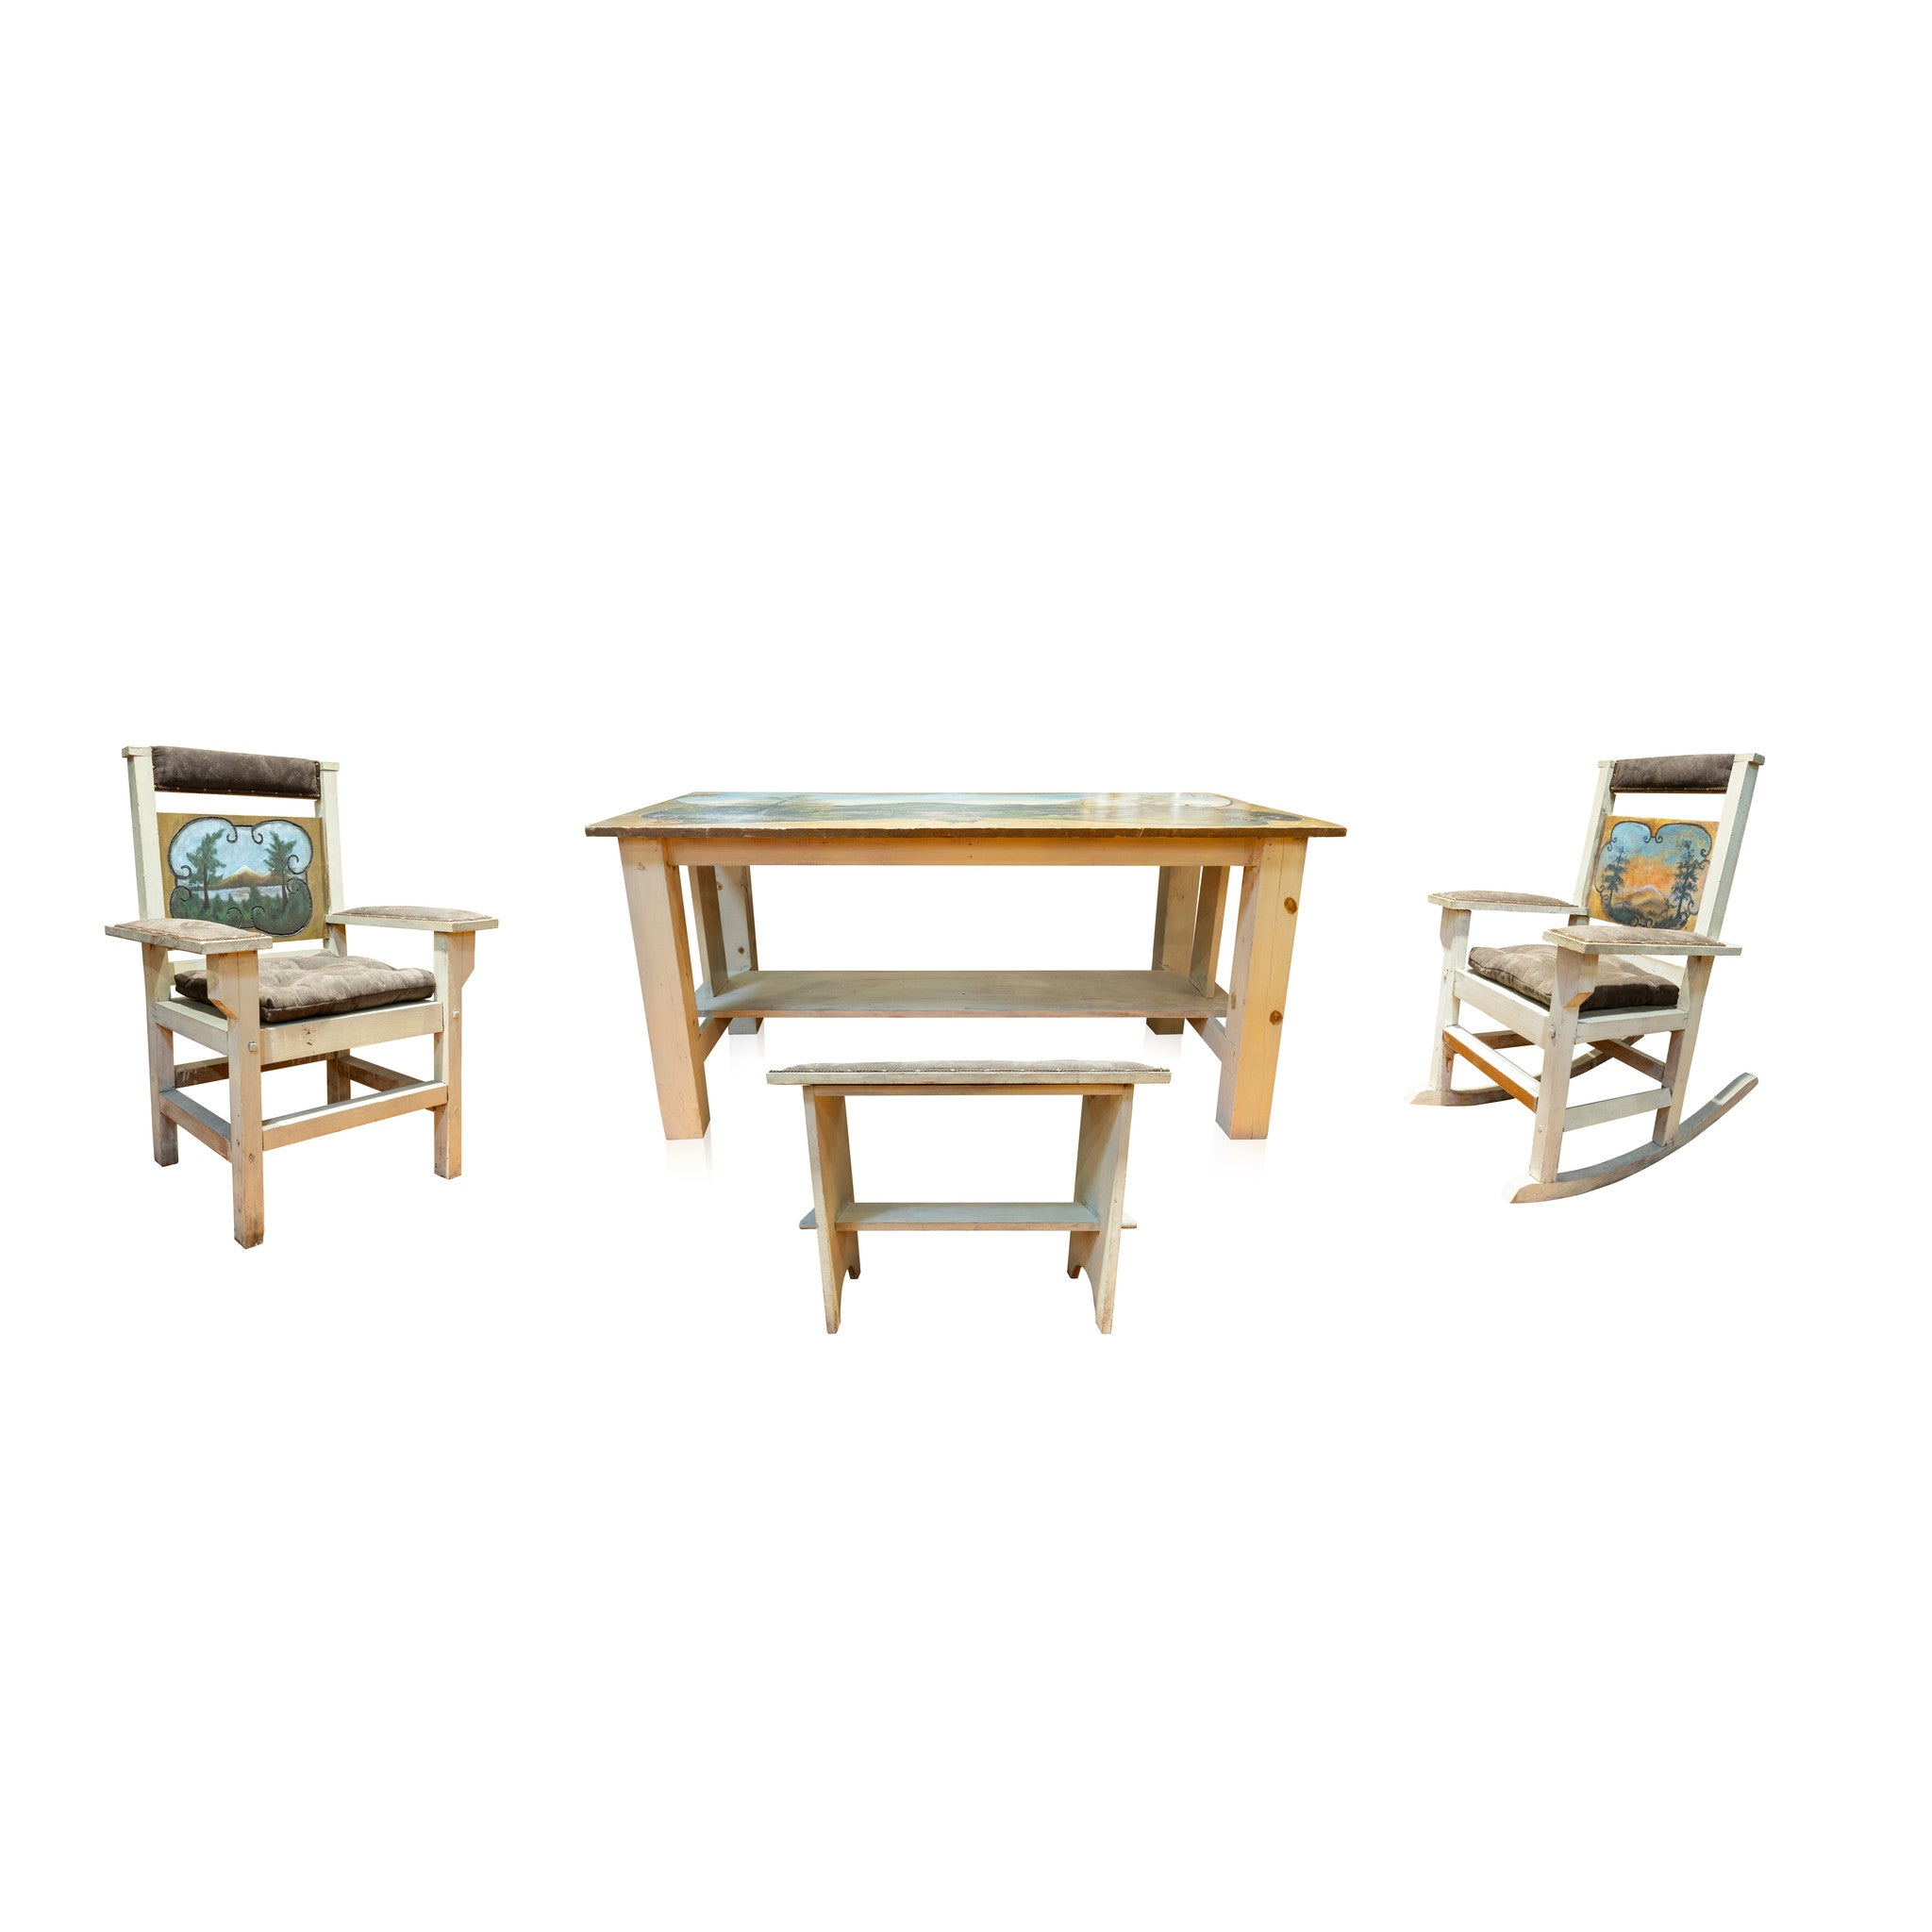 Dining Set with Painted Mountain Scene benches, chairs, dining sets, lodge furnishings: furniture: dinning table, sale item, seating, tables